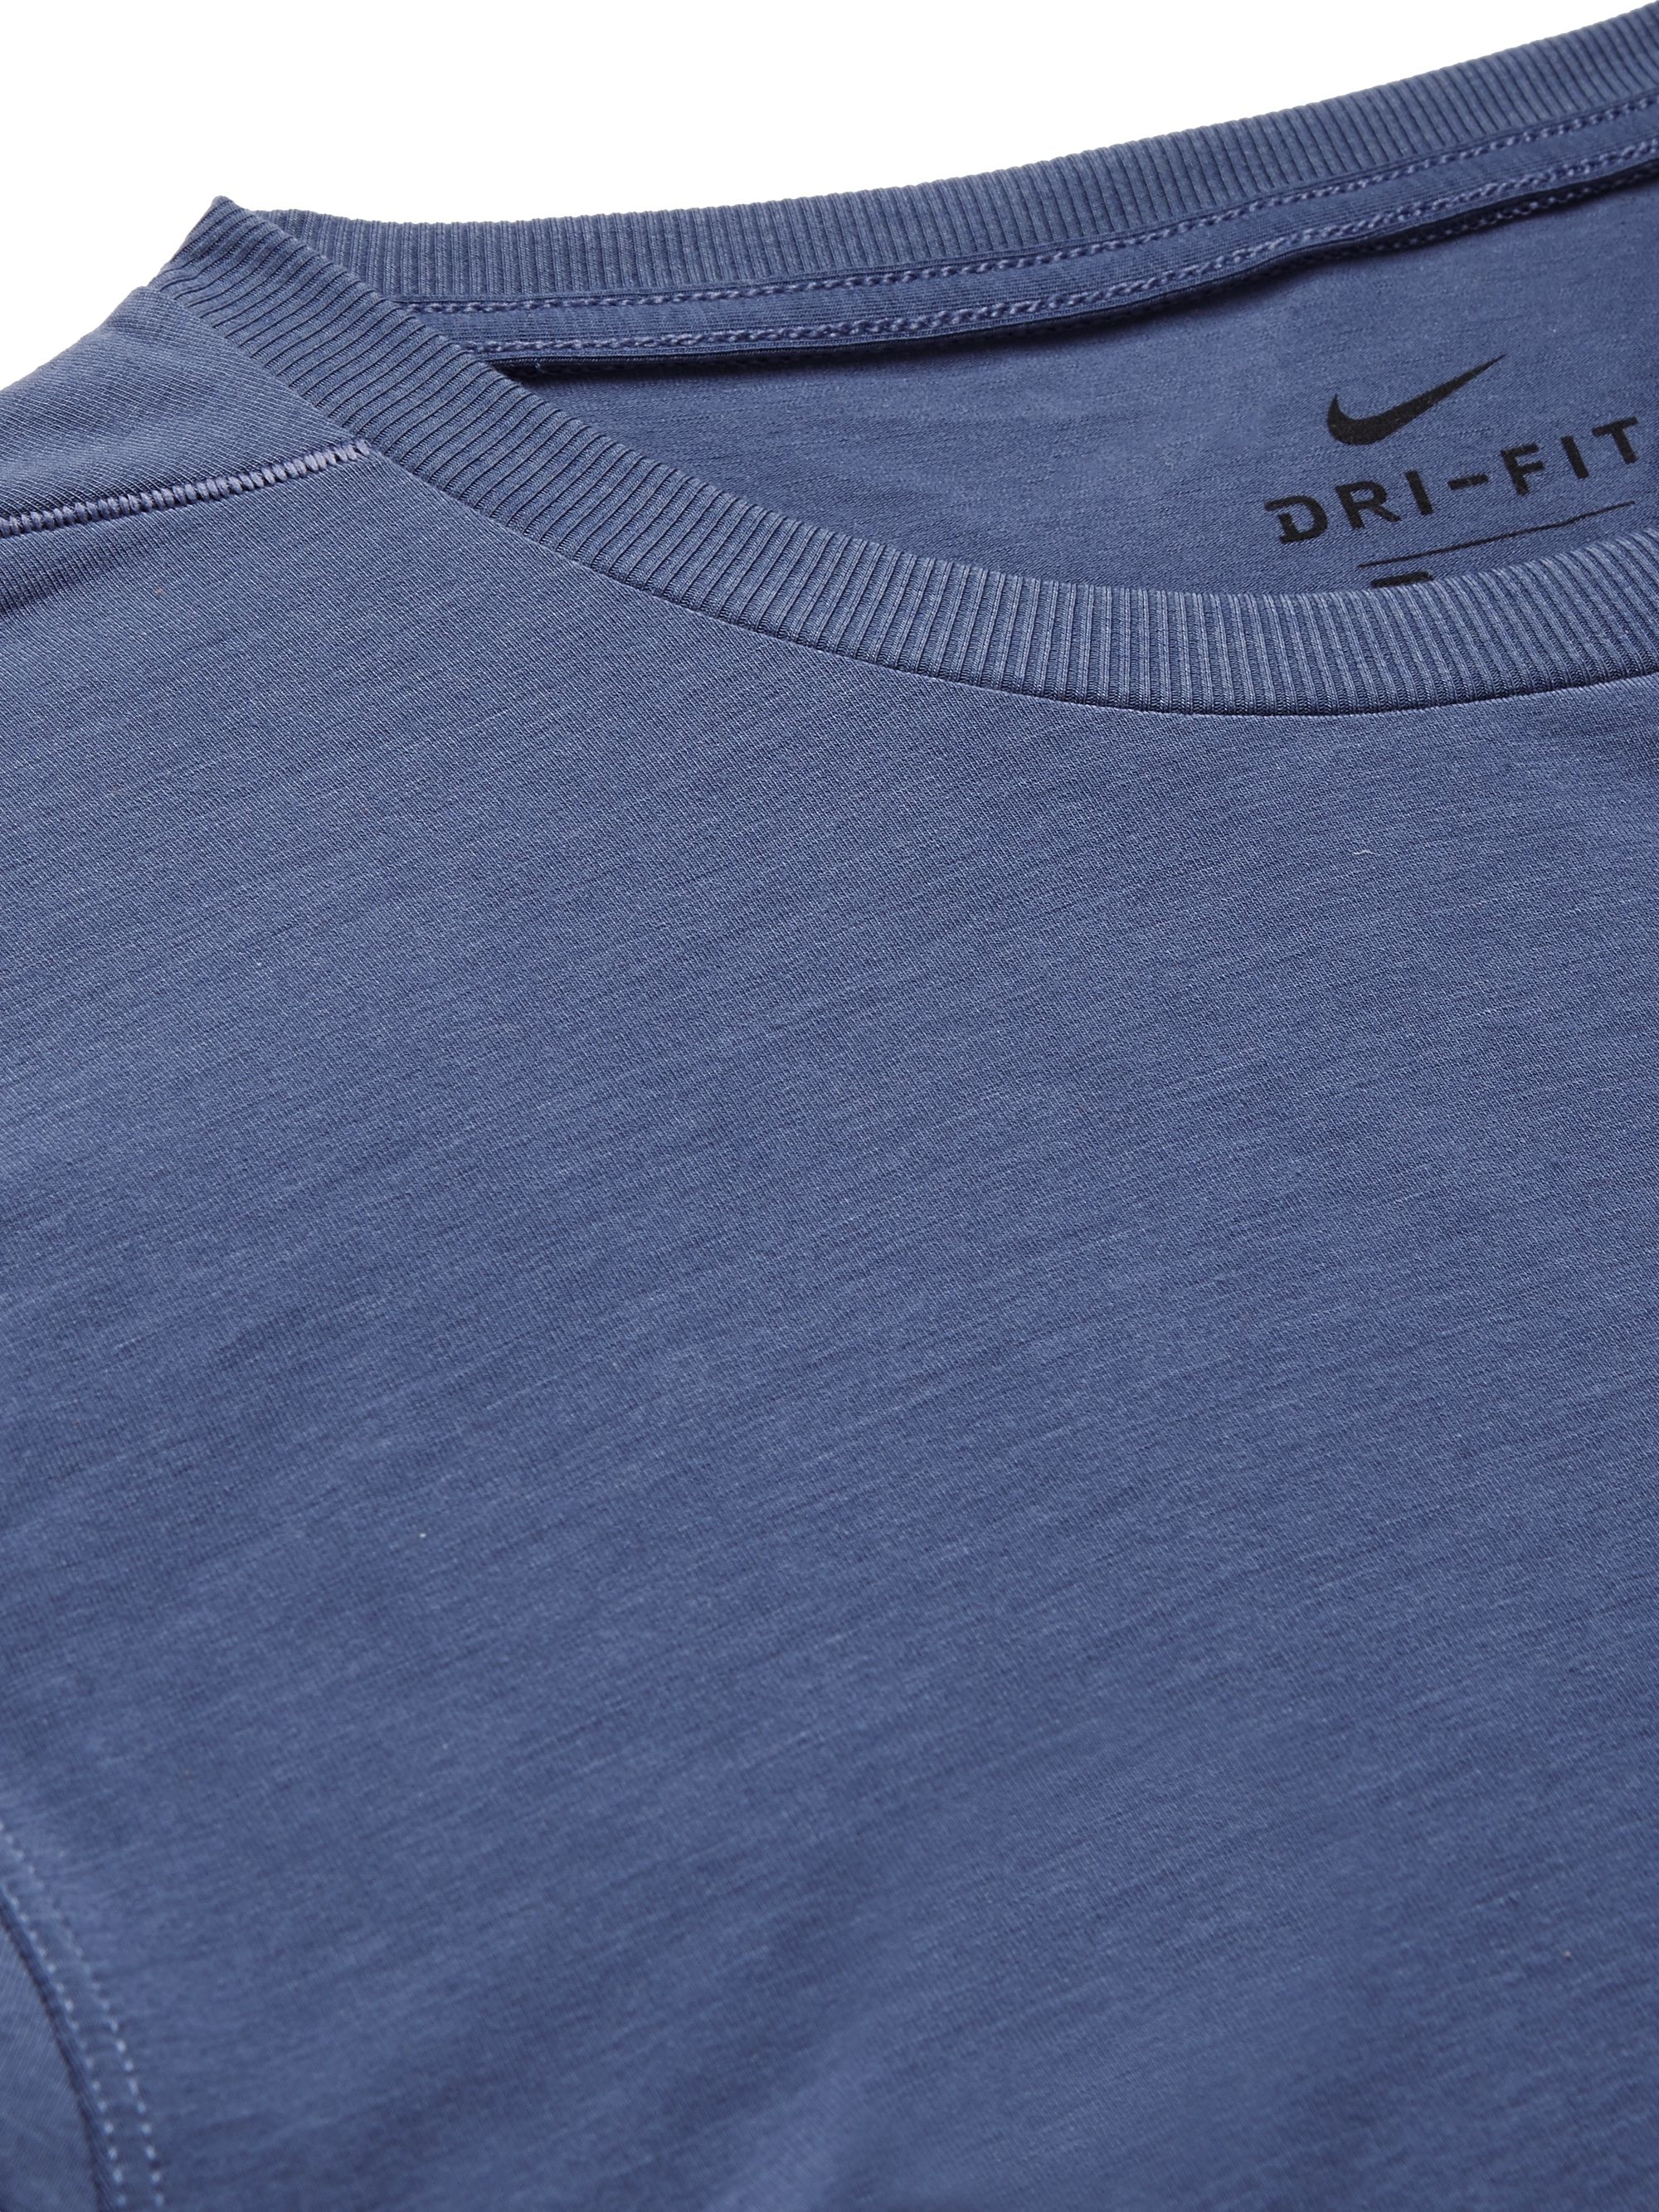 Nike Training Transcend Slim-Fit Dri-FIT T-Shirt